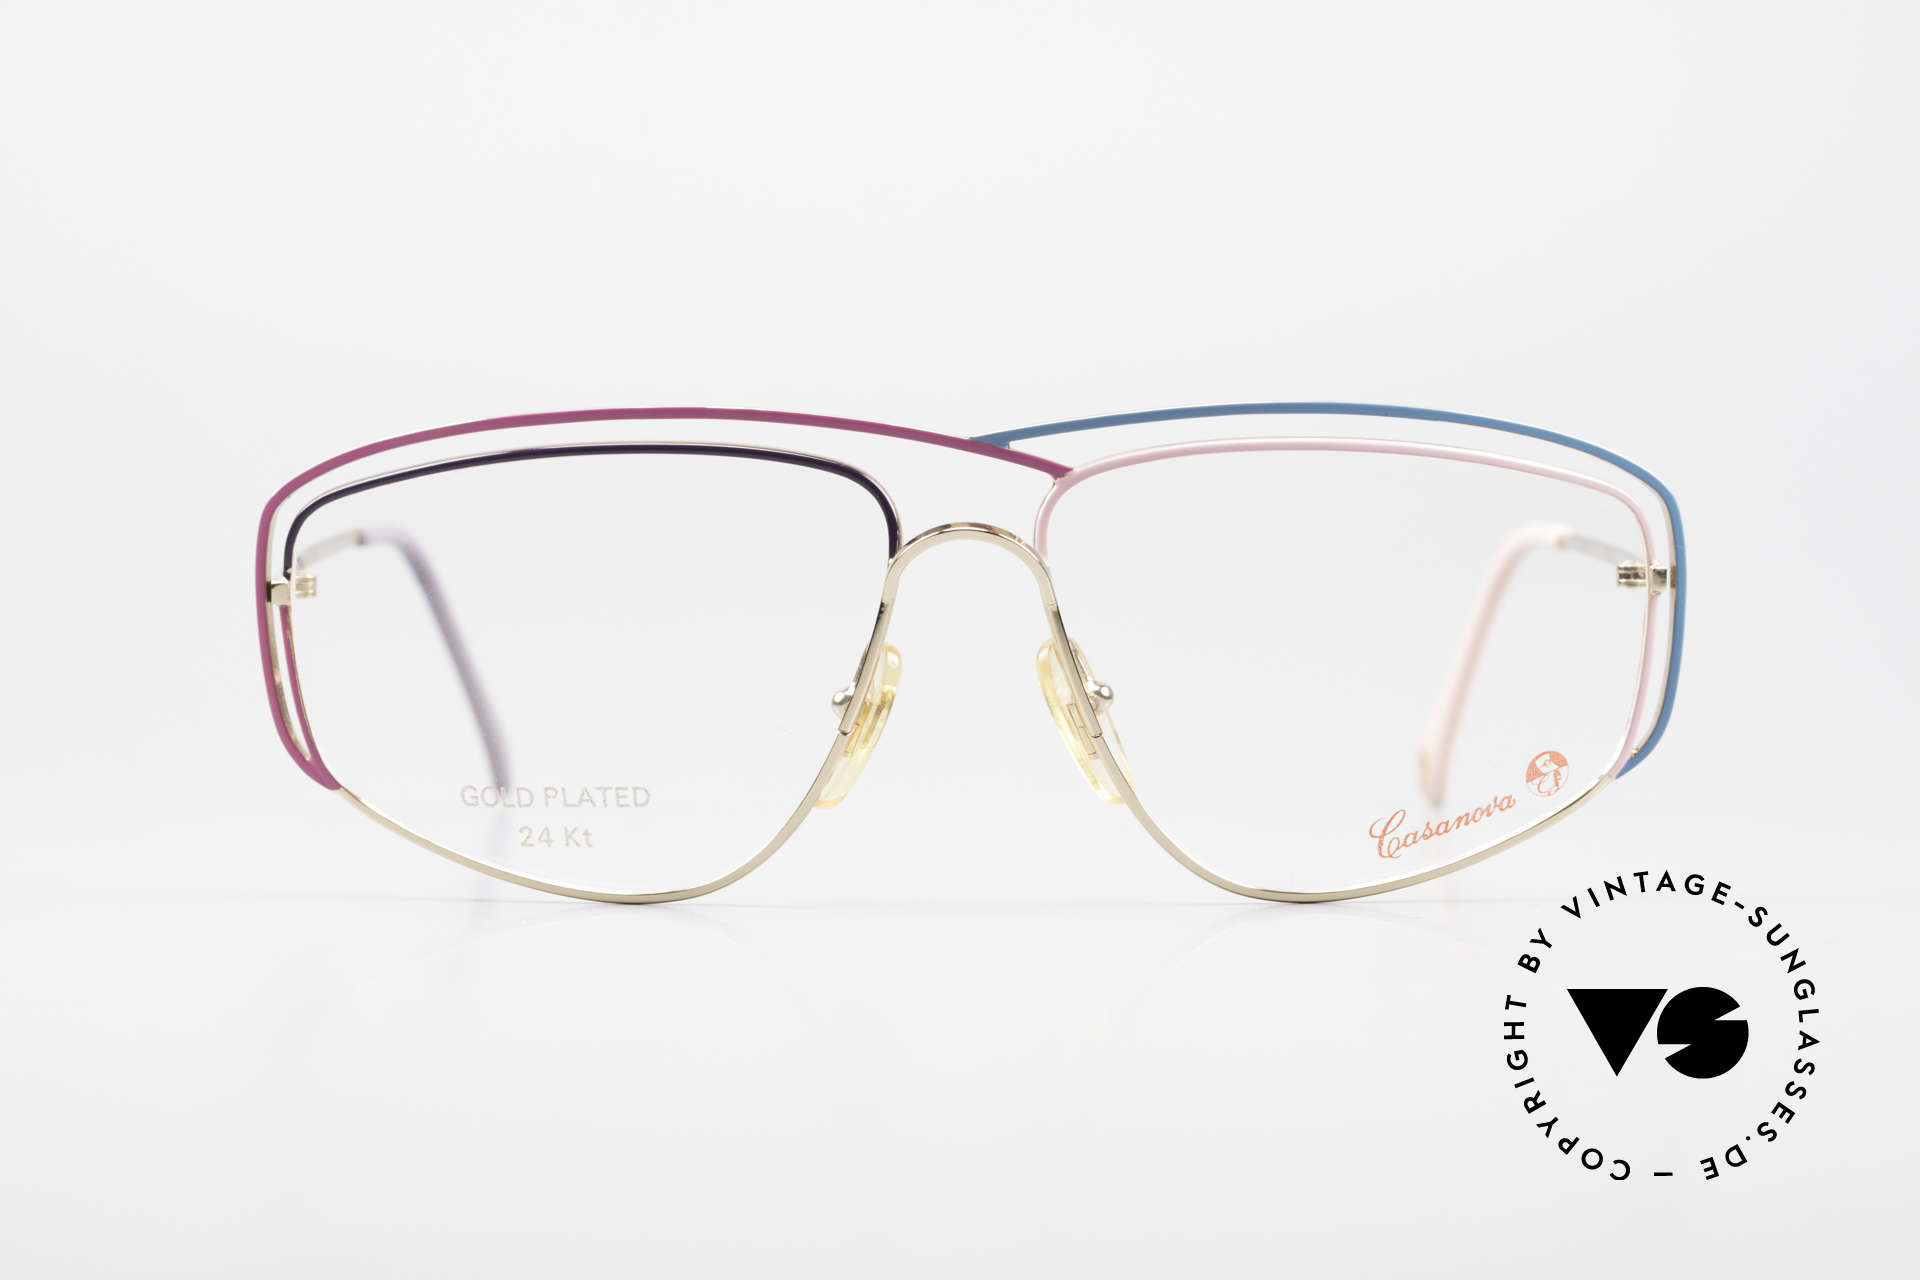 Casanova CN24 24kt Gold Plated Ladies Frame, fantastic combination of colors, shape & functionality, Made for Women